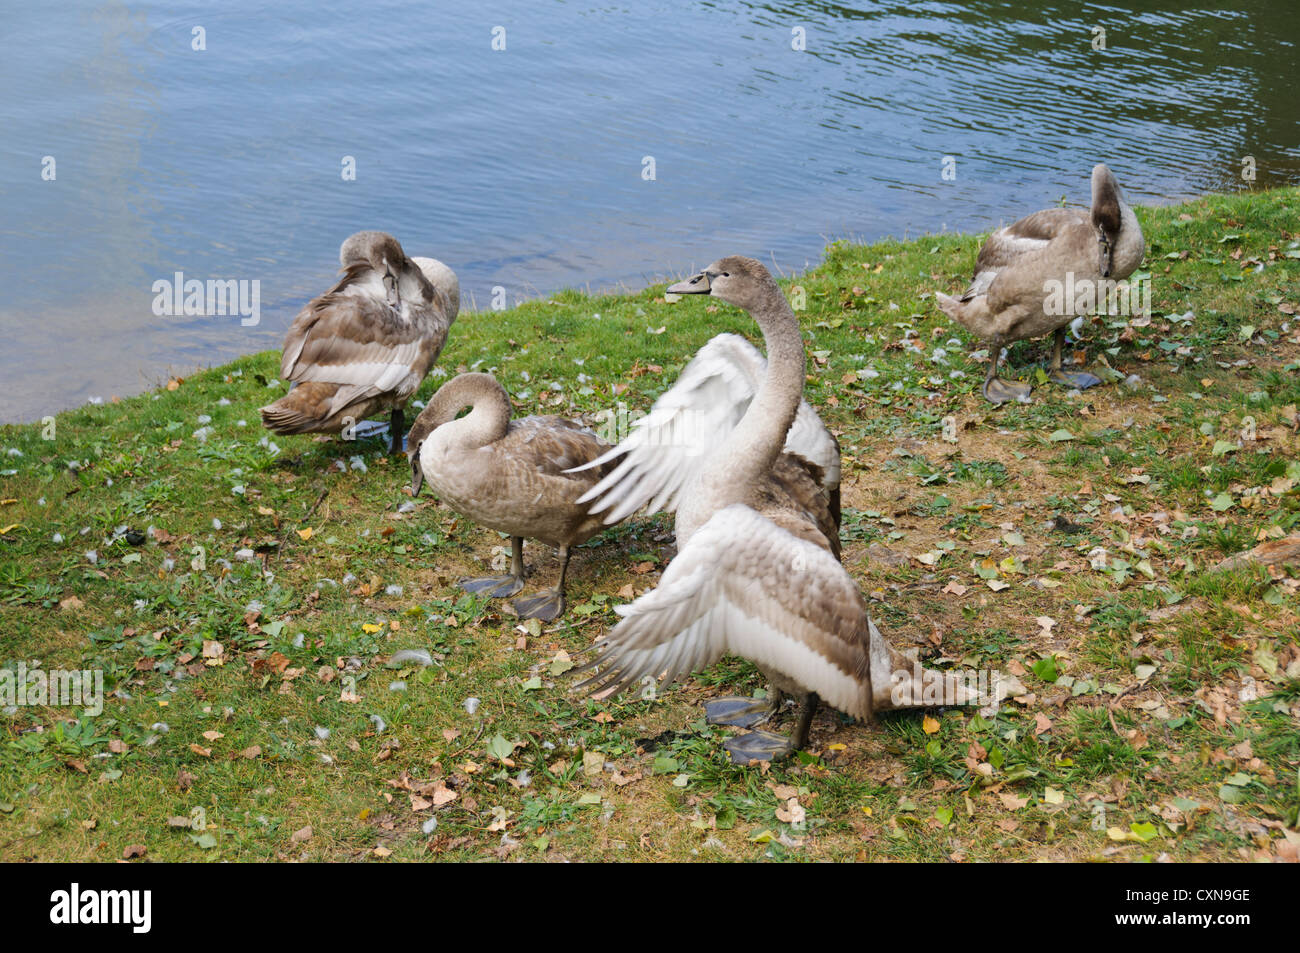 Four juvenile Mute Swans, Cygnus olor, Anatidae, flap with wings cleaning feather coat plumage at a river bank - Stock Image